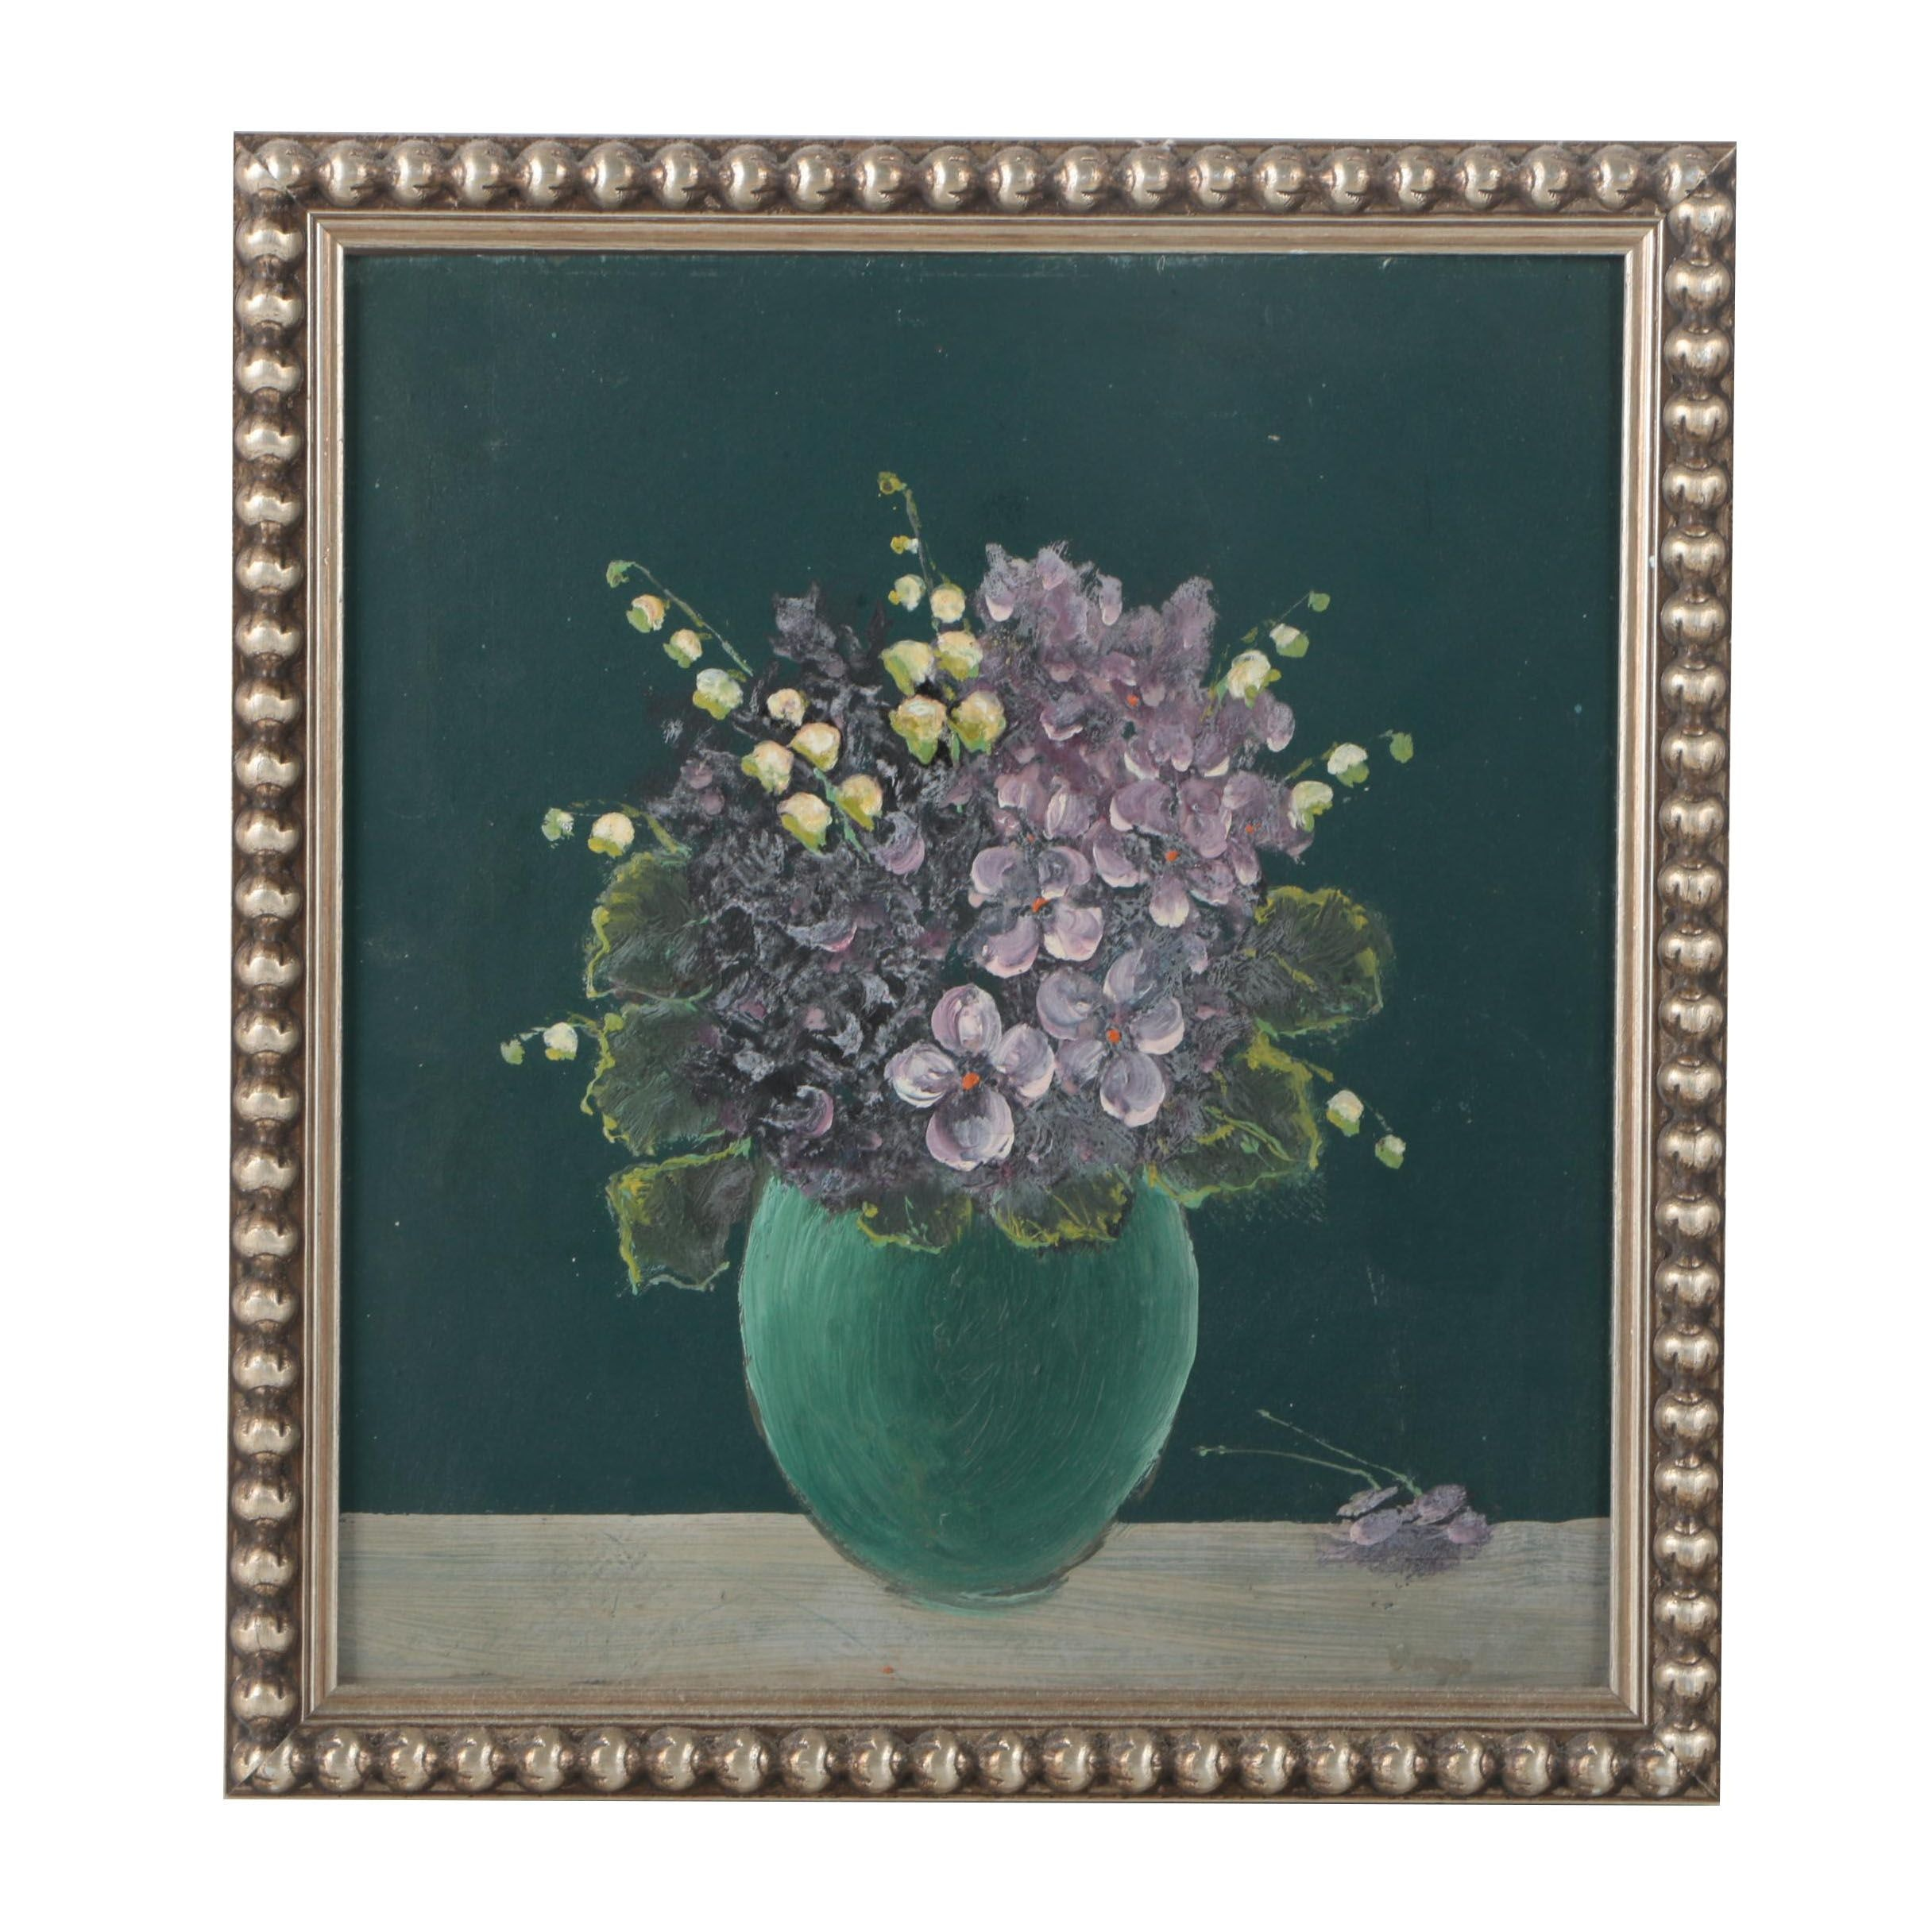 Oil Painting on Board of Floral Still Life